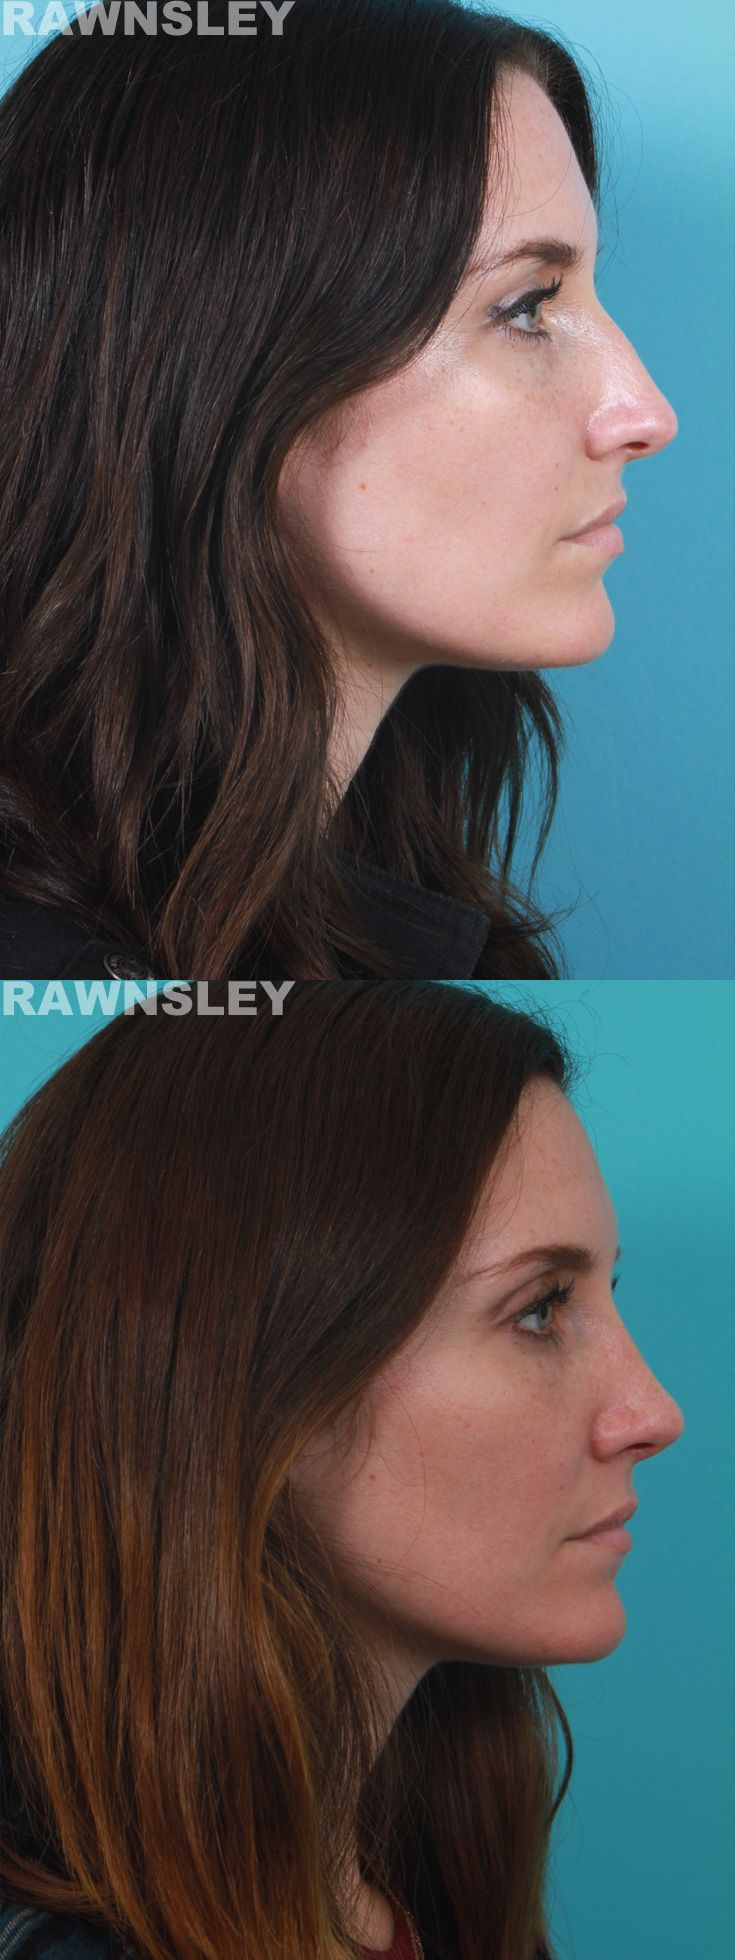 Rhinoplasty Before & After | Rawnsley Plastic Surgery